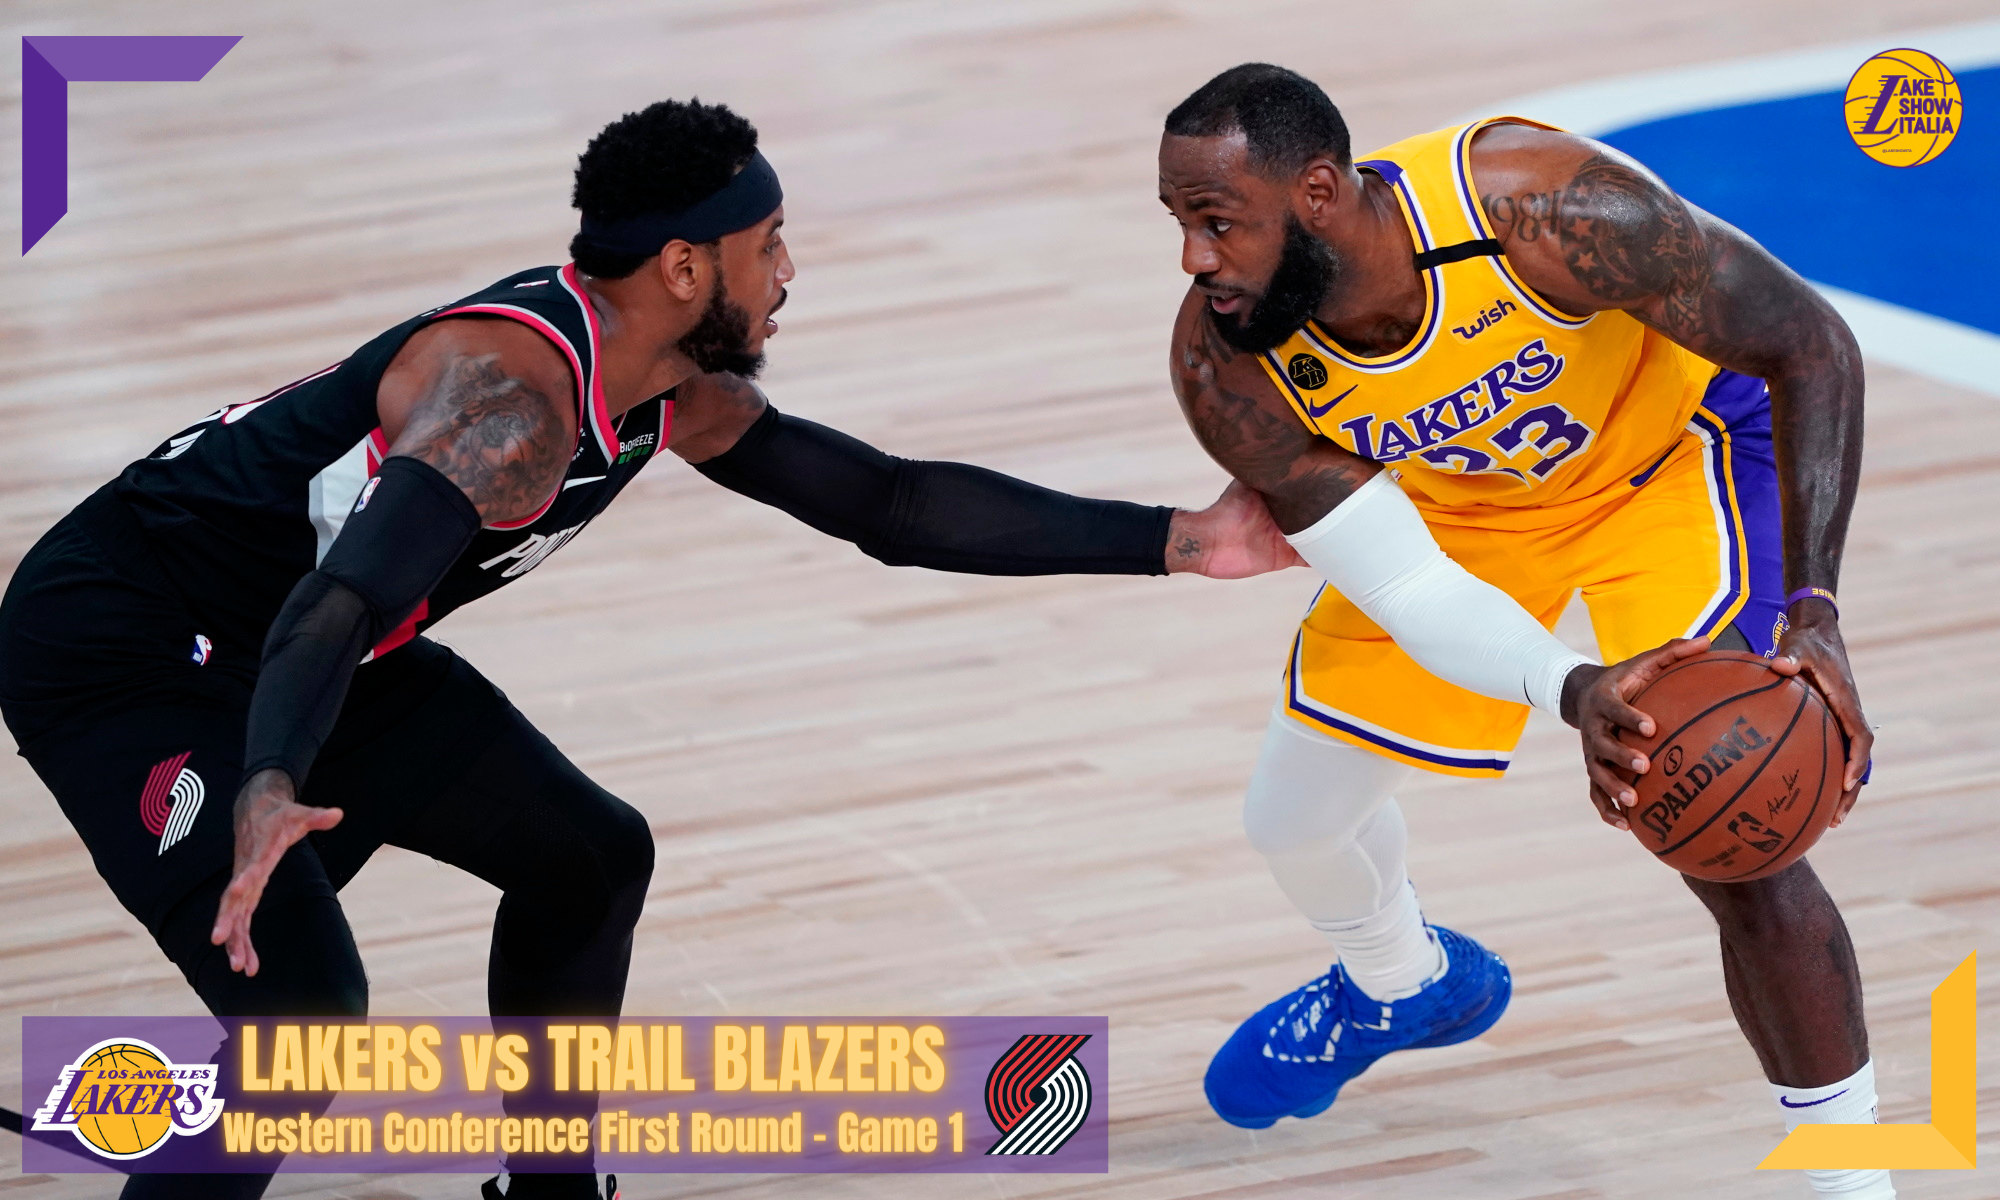 Los Angeles Lakers forward LeBron James (23) works the ball against Portland Trail Blazers forward Carmelo Anthony (00) during the first half of an NBA basketball game Tuesday, Aug. 18, 2020, in Lake Buena Vista, Fla.